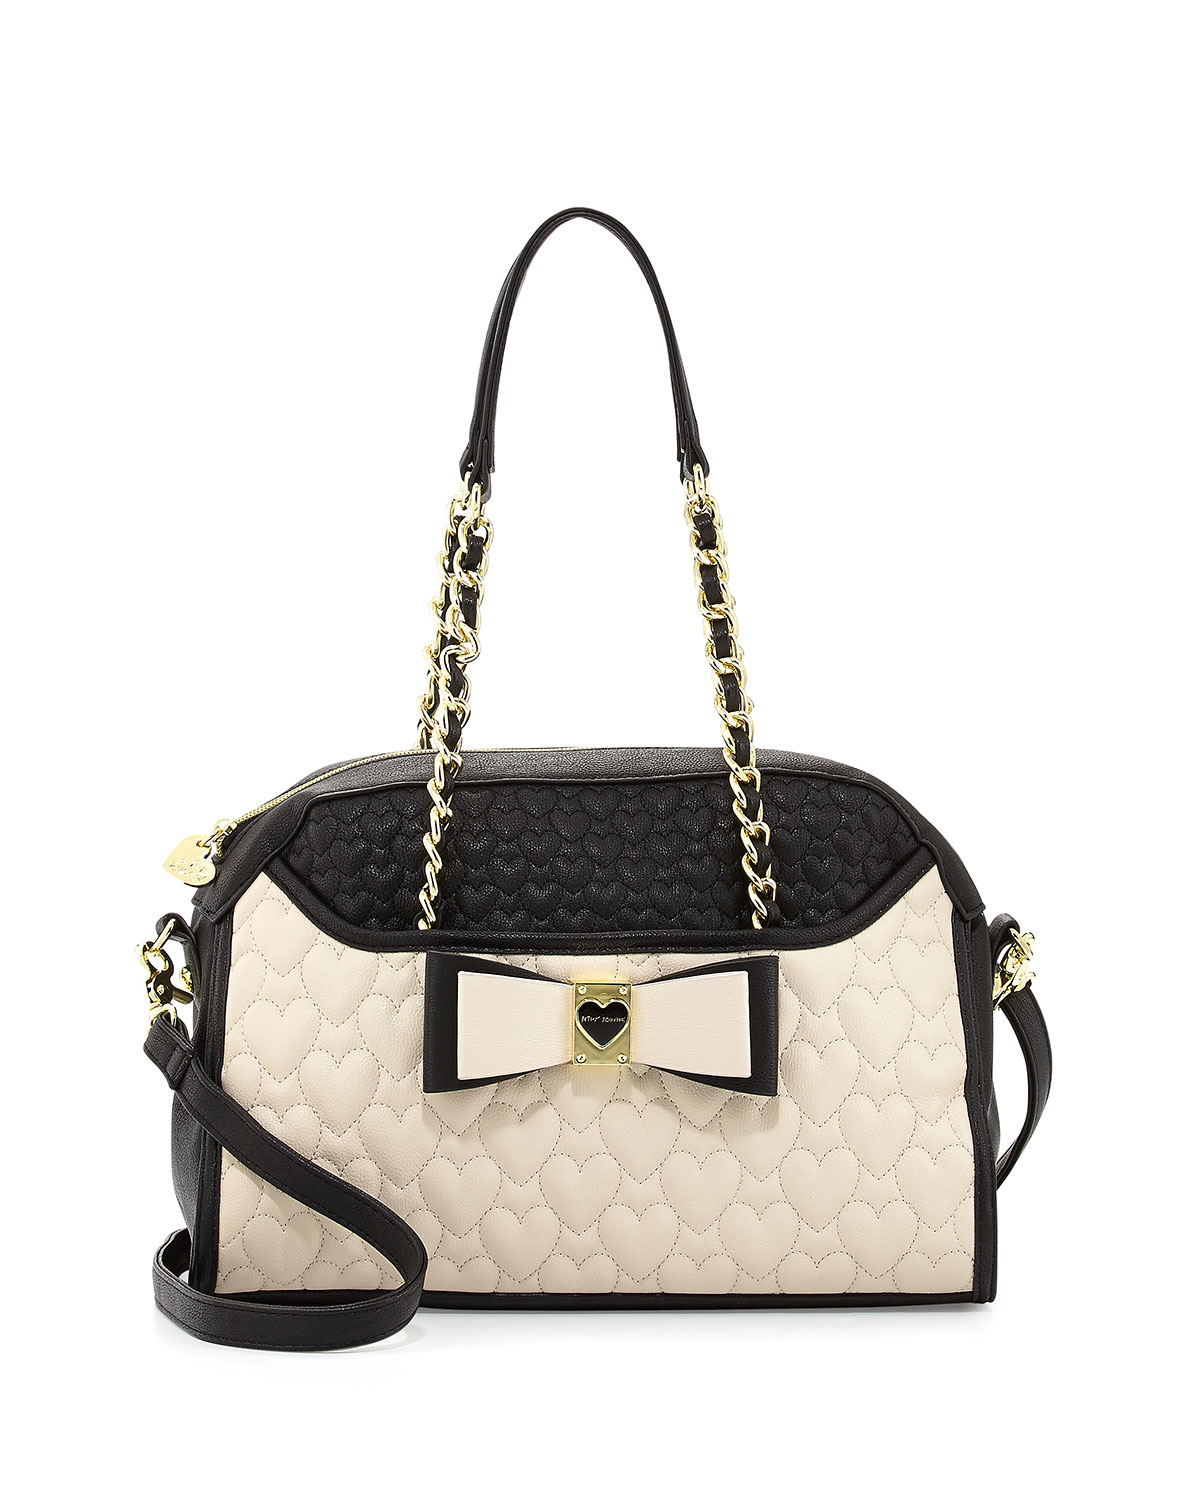 00879a75bb84 Lyst - Betsey Johnson Colorblocked Quilted Heart Dome Satchel Bag ...